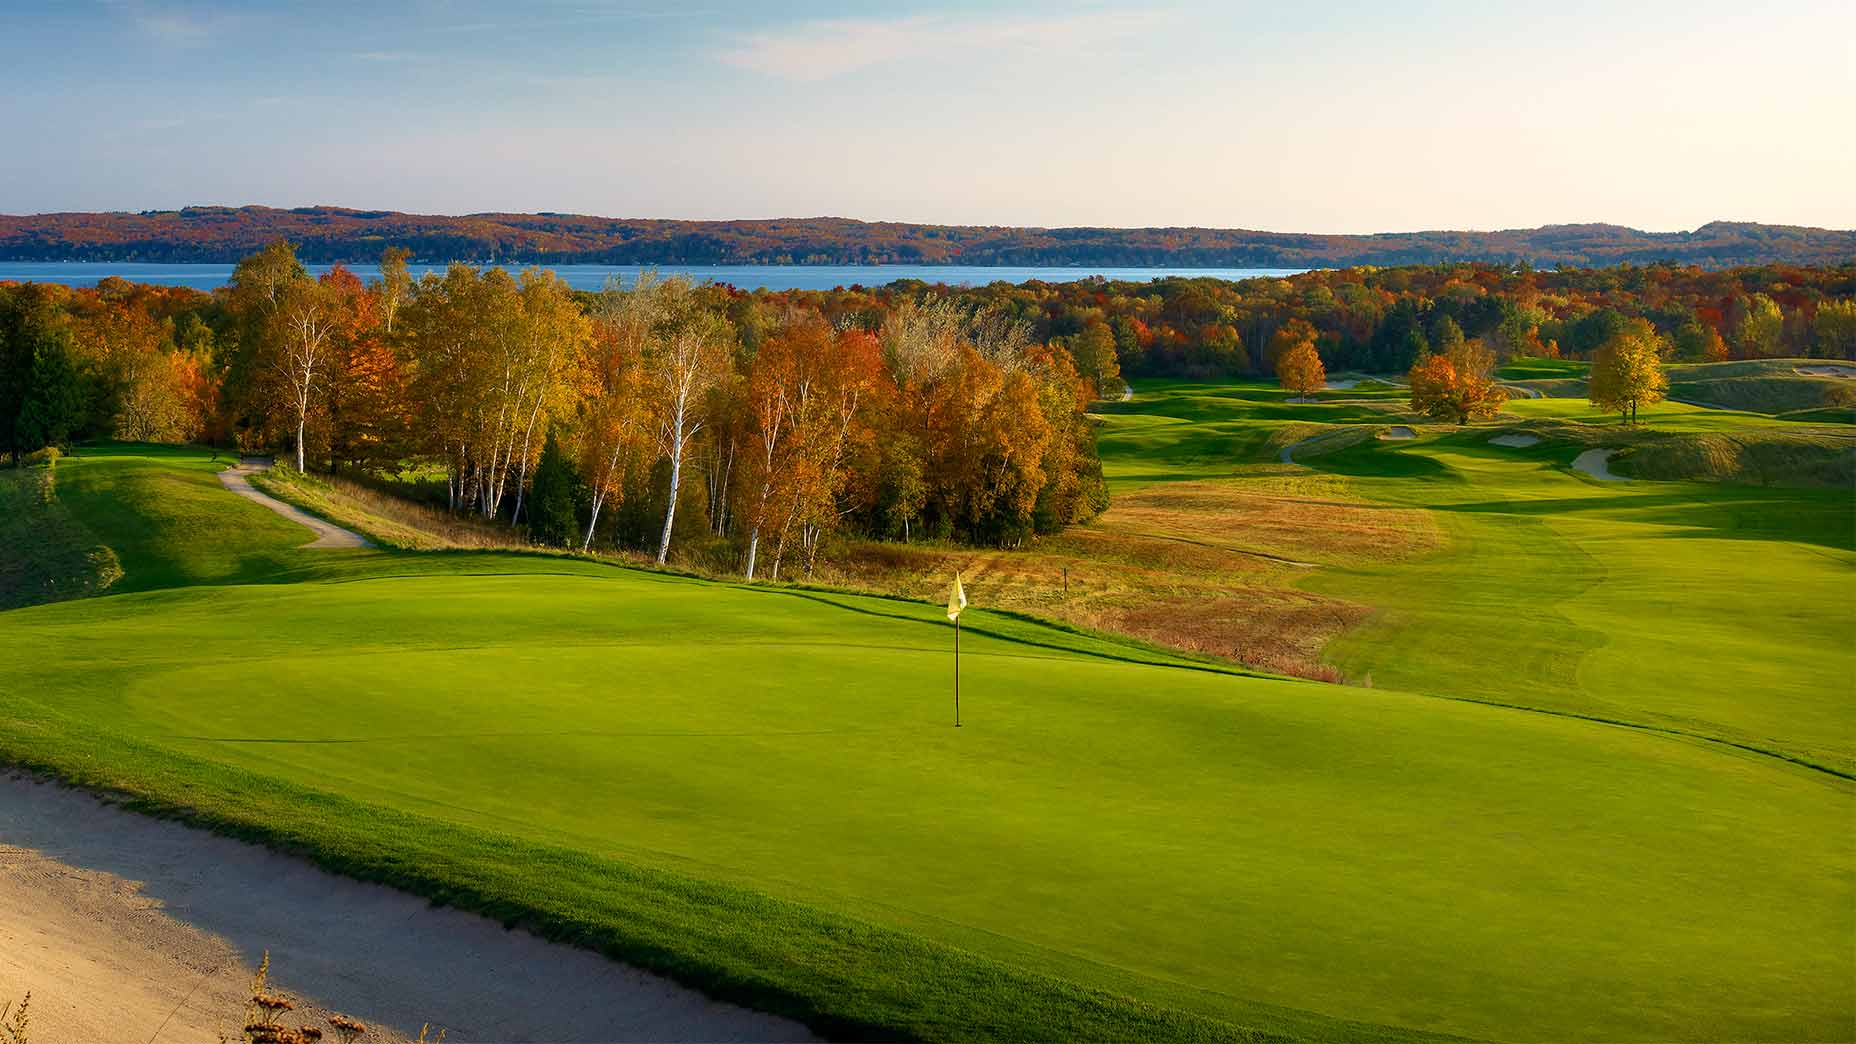 Best golf courses in Michigan, according to GOLF Magazine ...